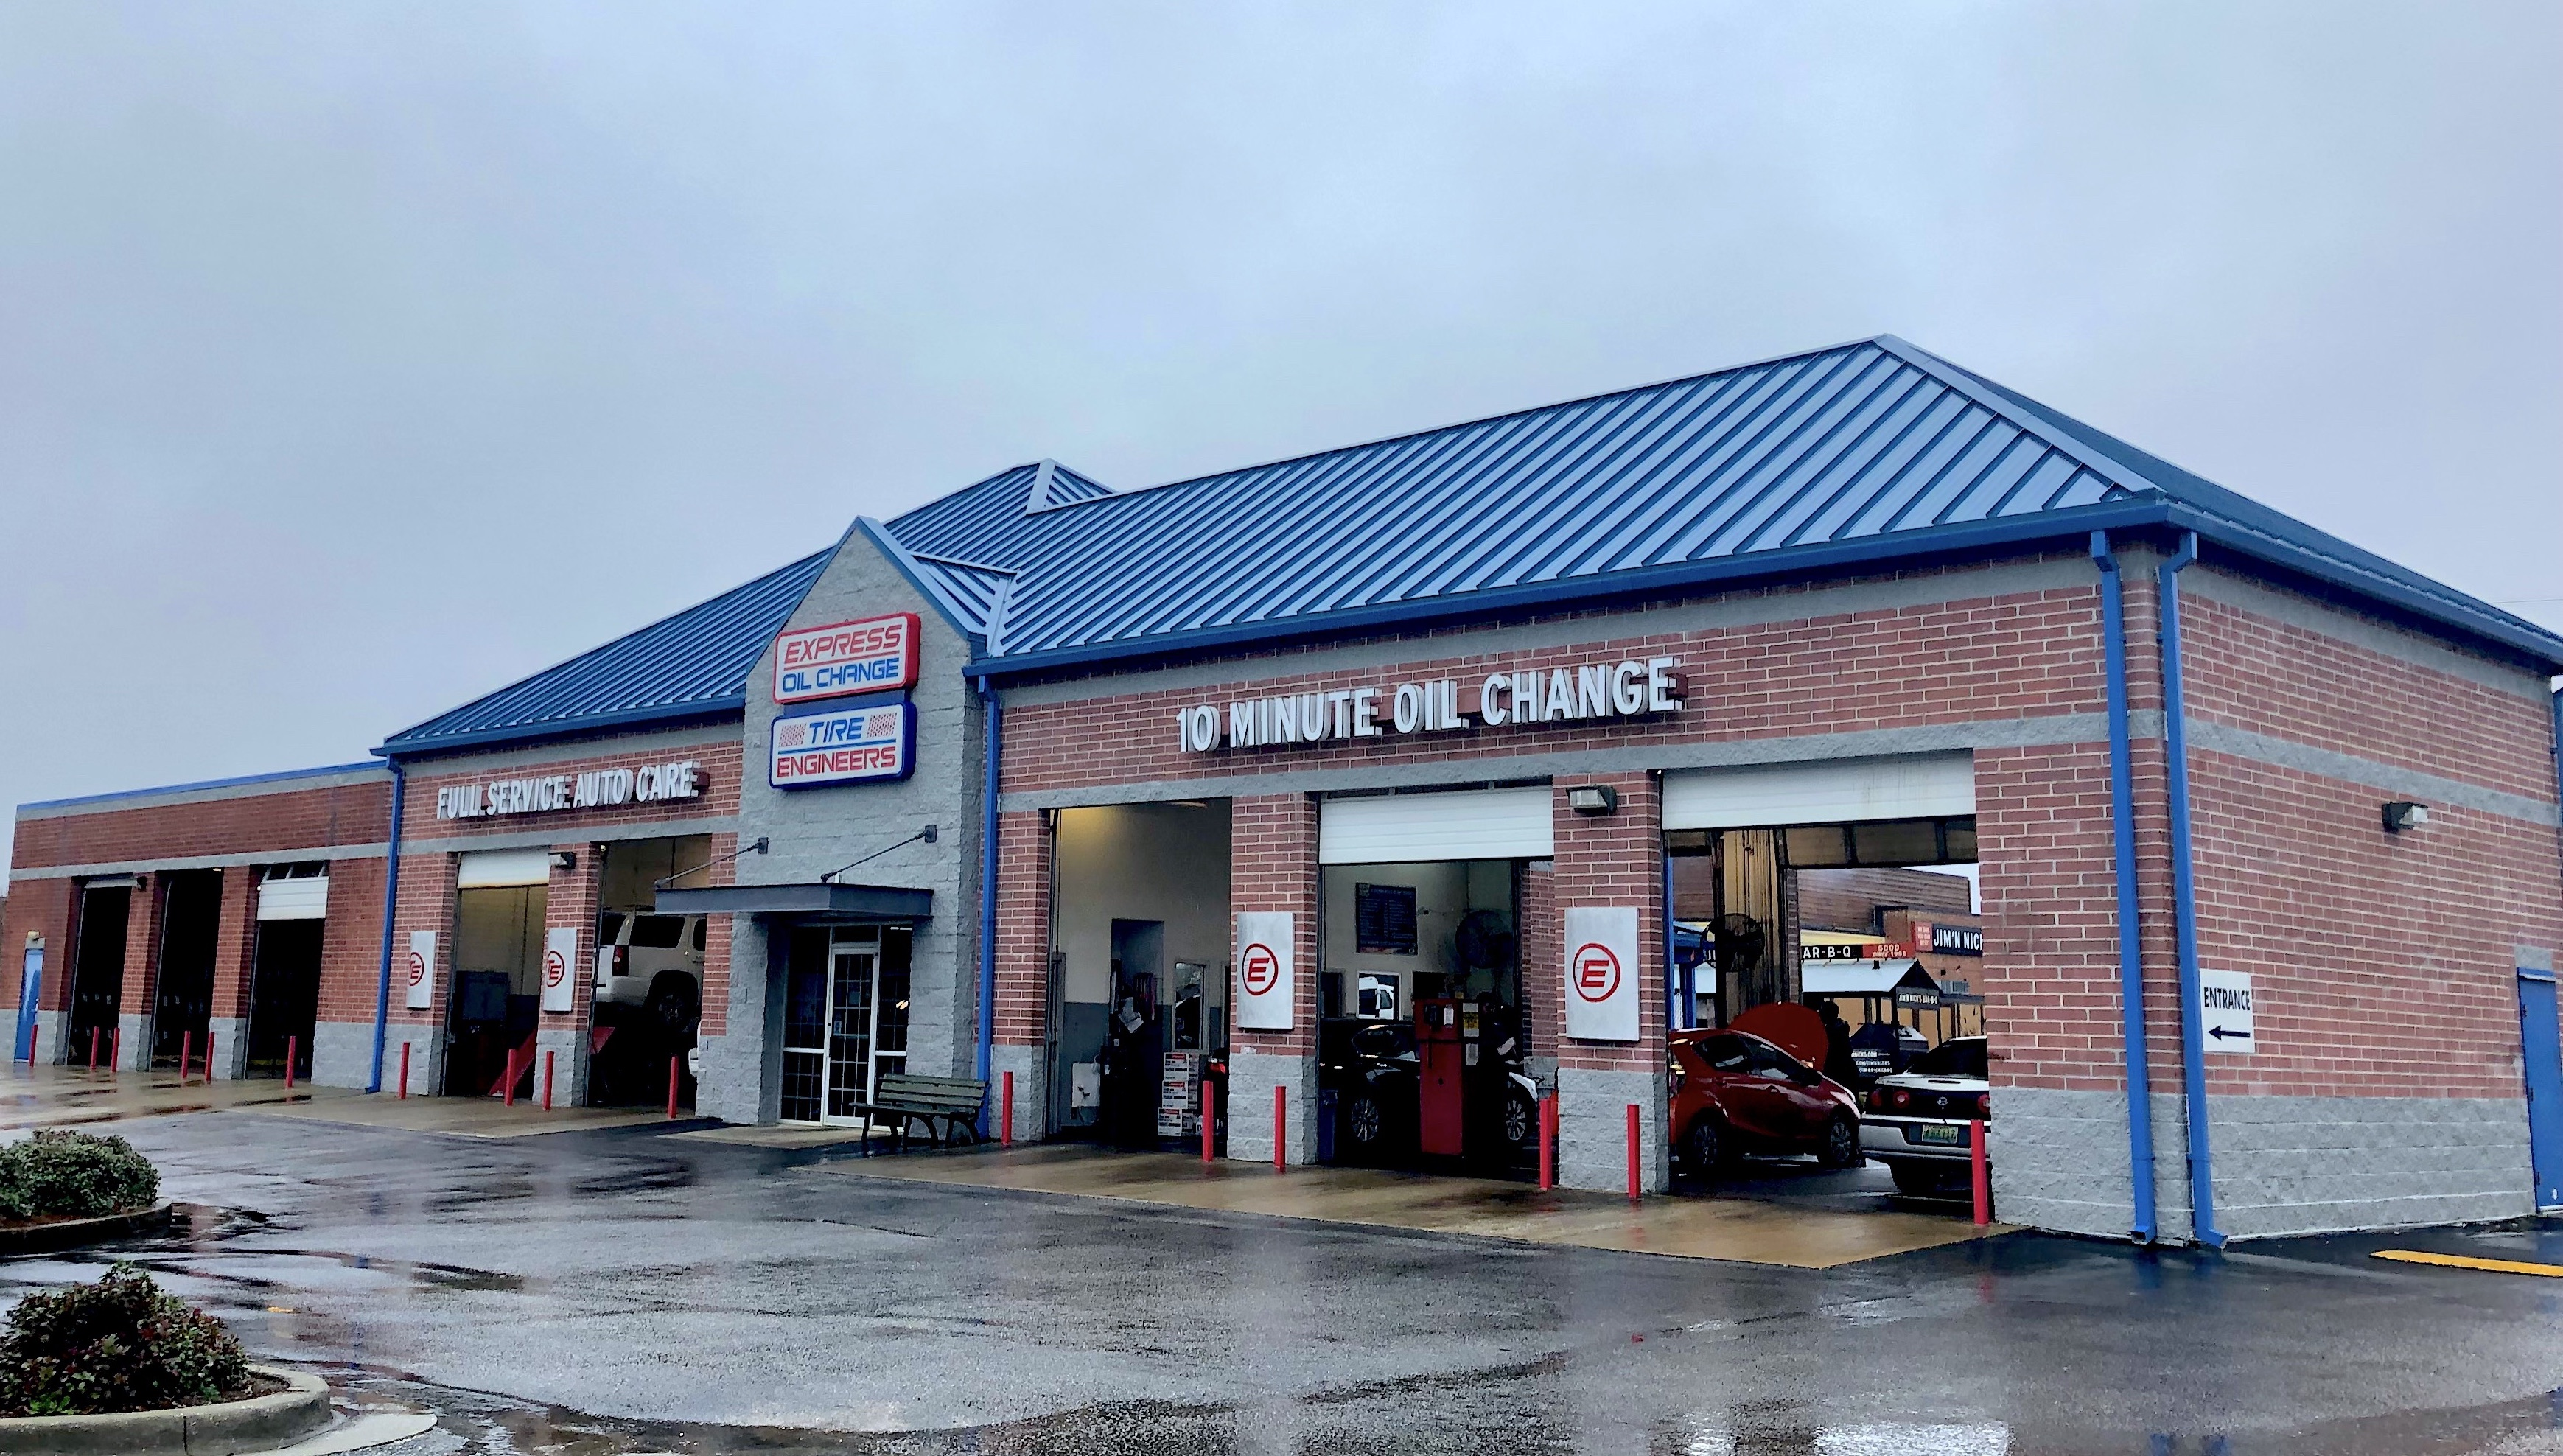 Express Oil Change & Tire Engineers at Auburn, AL - College Street store